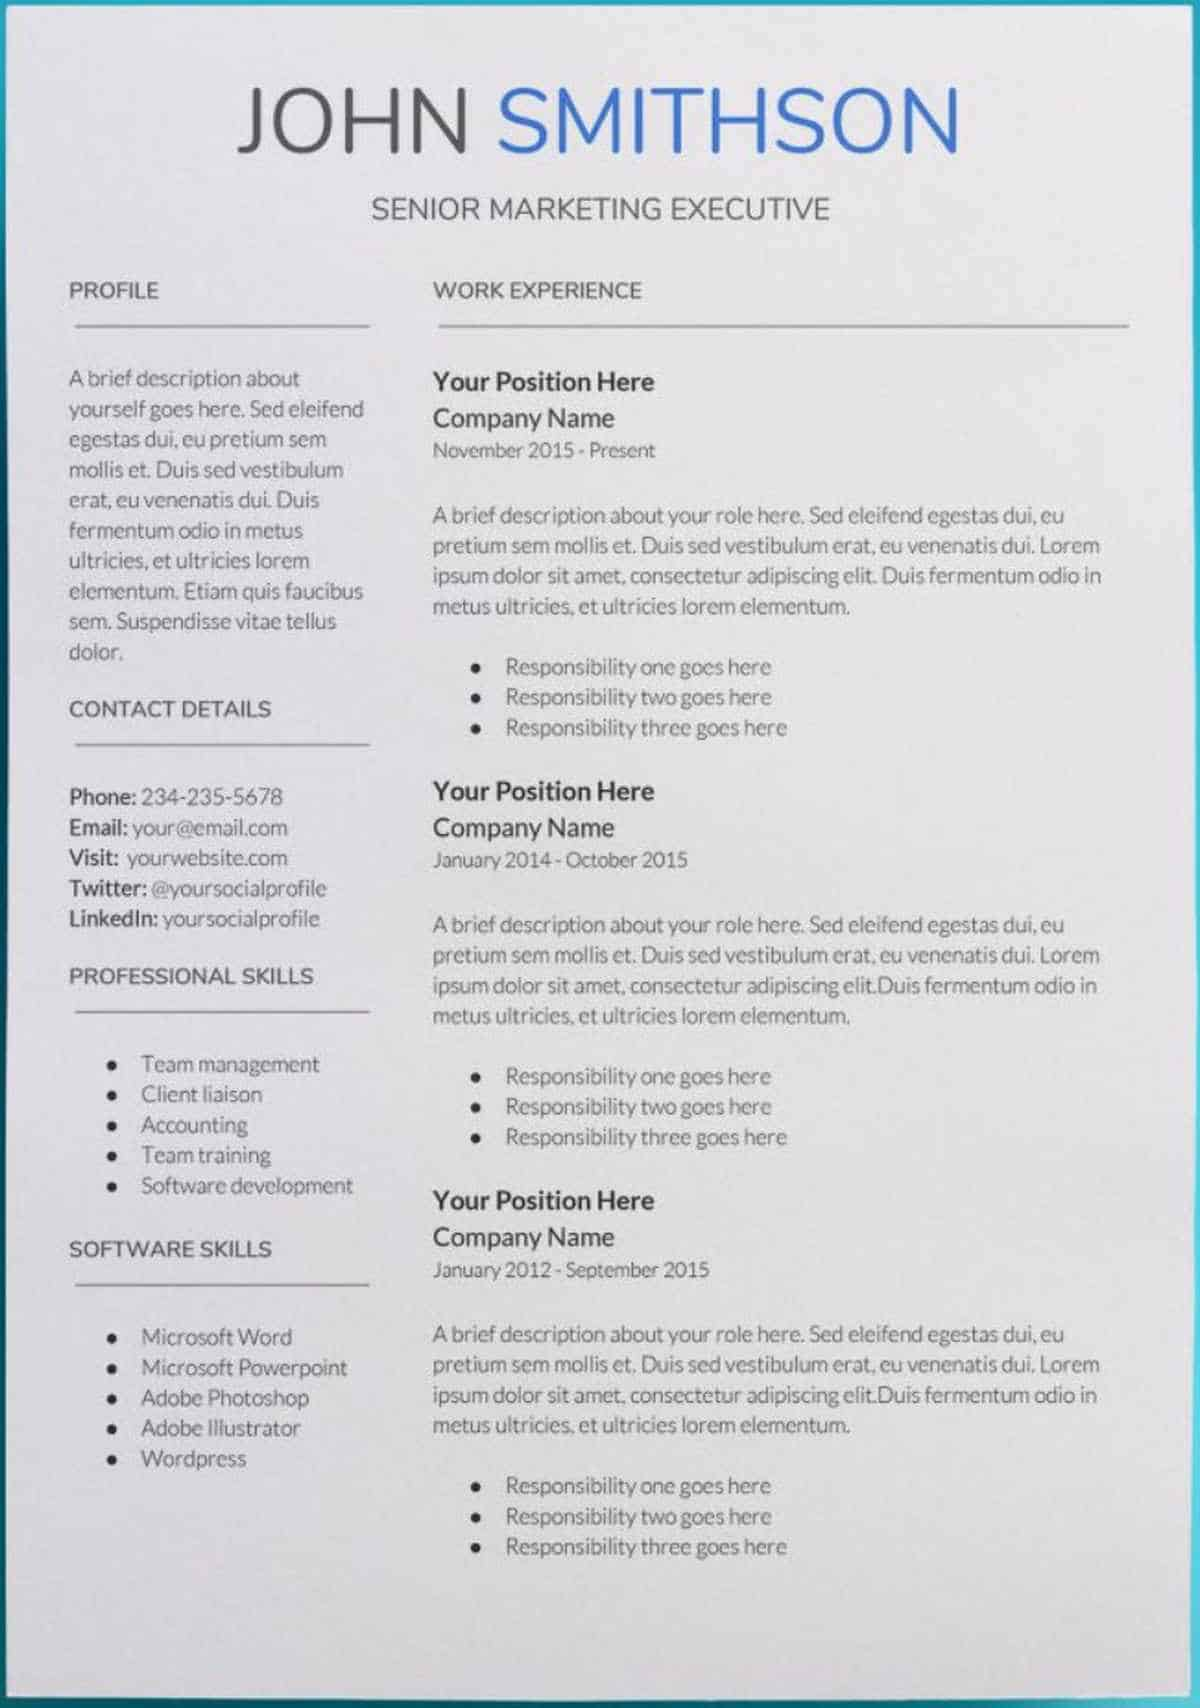 google docs resume templates downloadable pdfs best template saturn free customer service Resume Google Docs Best Resume Template